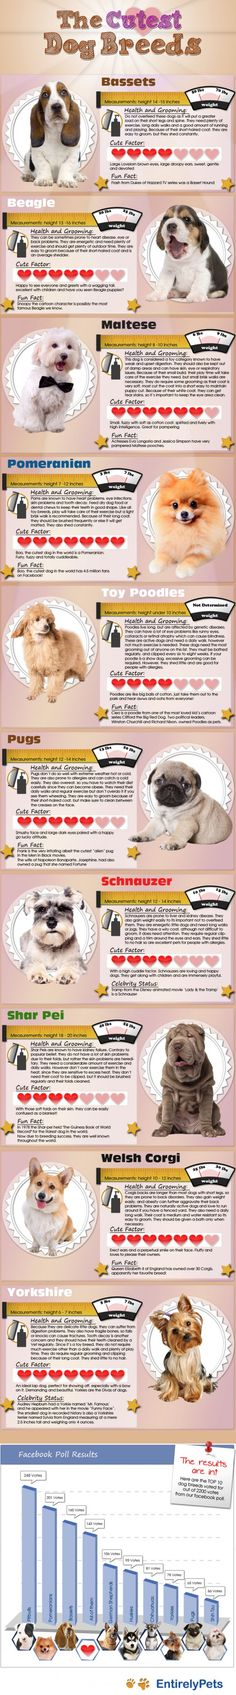 'The Cutest Dog Breeds' #infographic #dogs - no doubt controversial and probably unreliable unscientific market research if relying on opt-in facebook input!